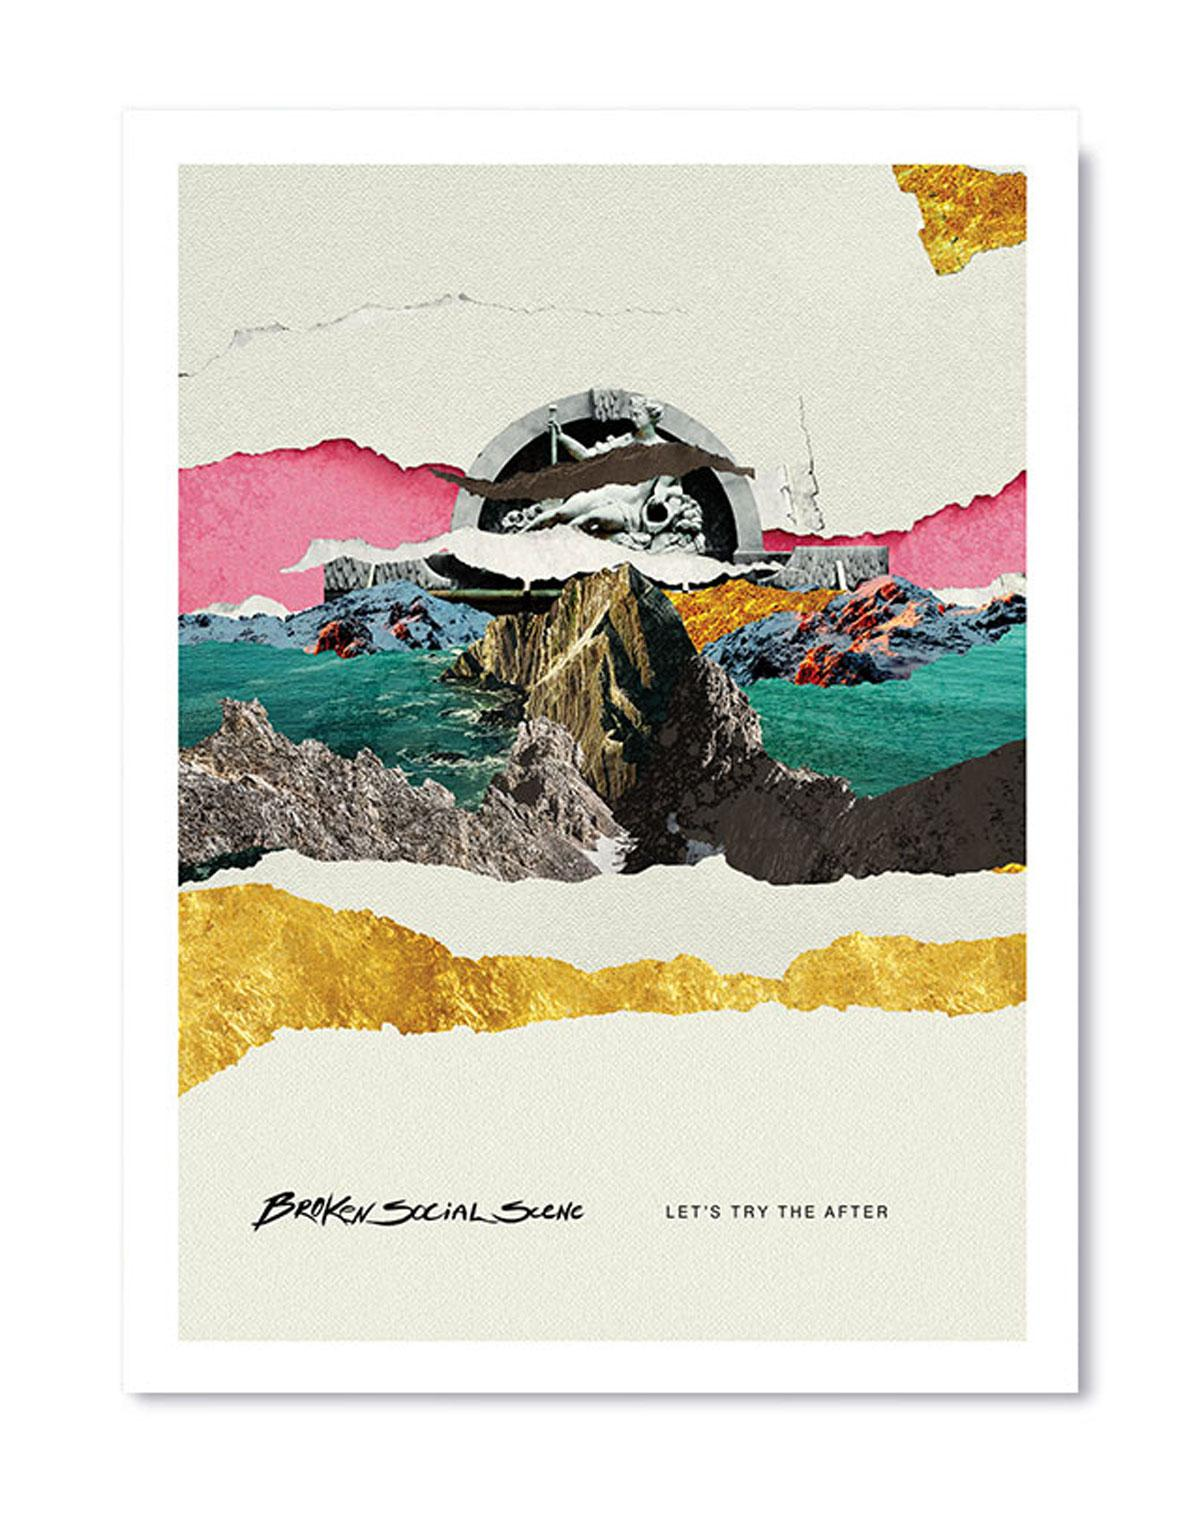 Broken Social Scene -POSTER- Lets Try The After 18???x24??? (2019)